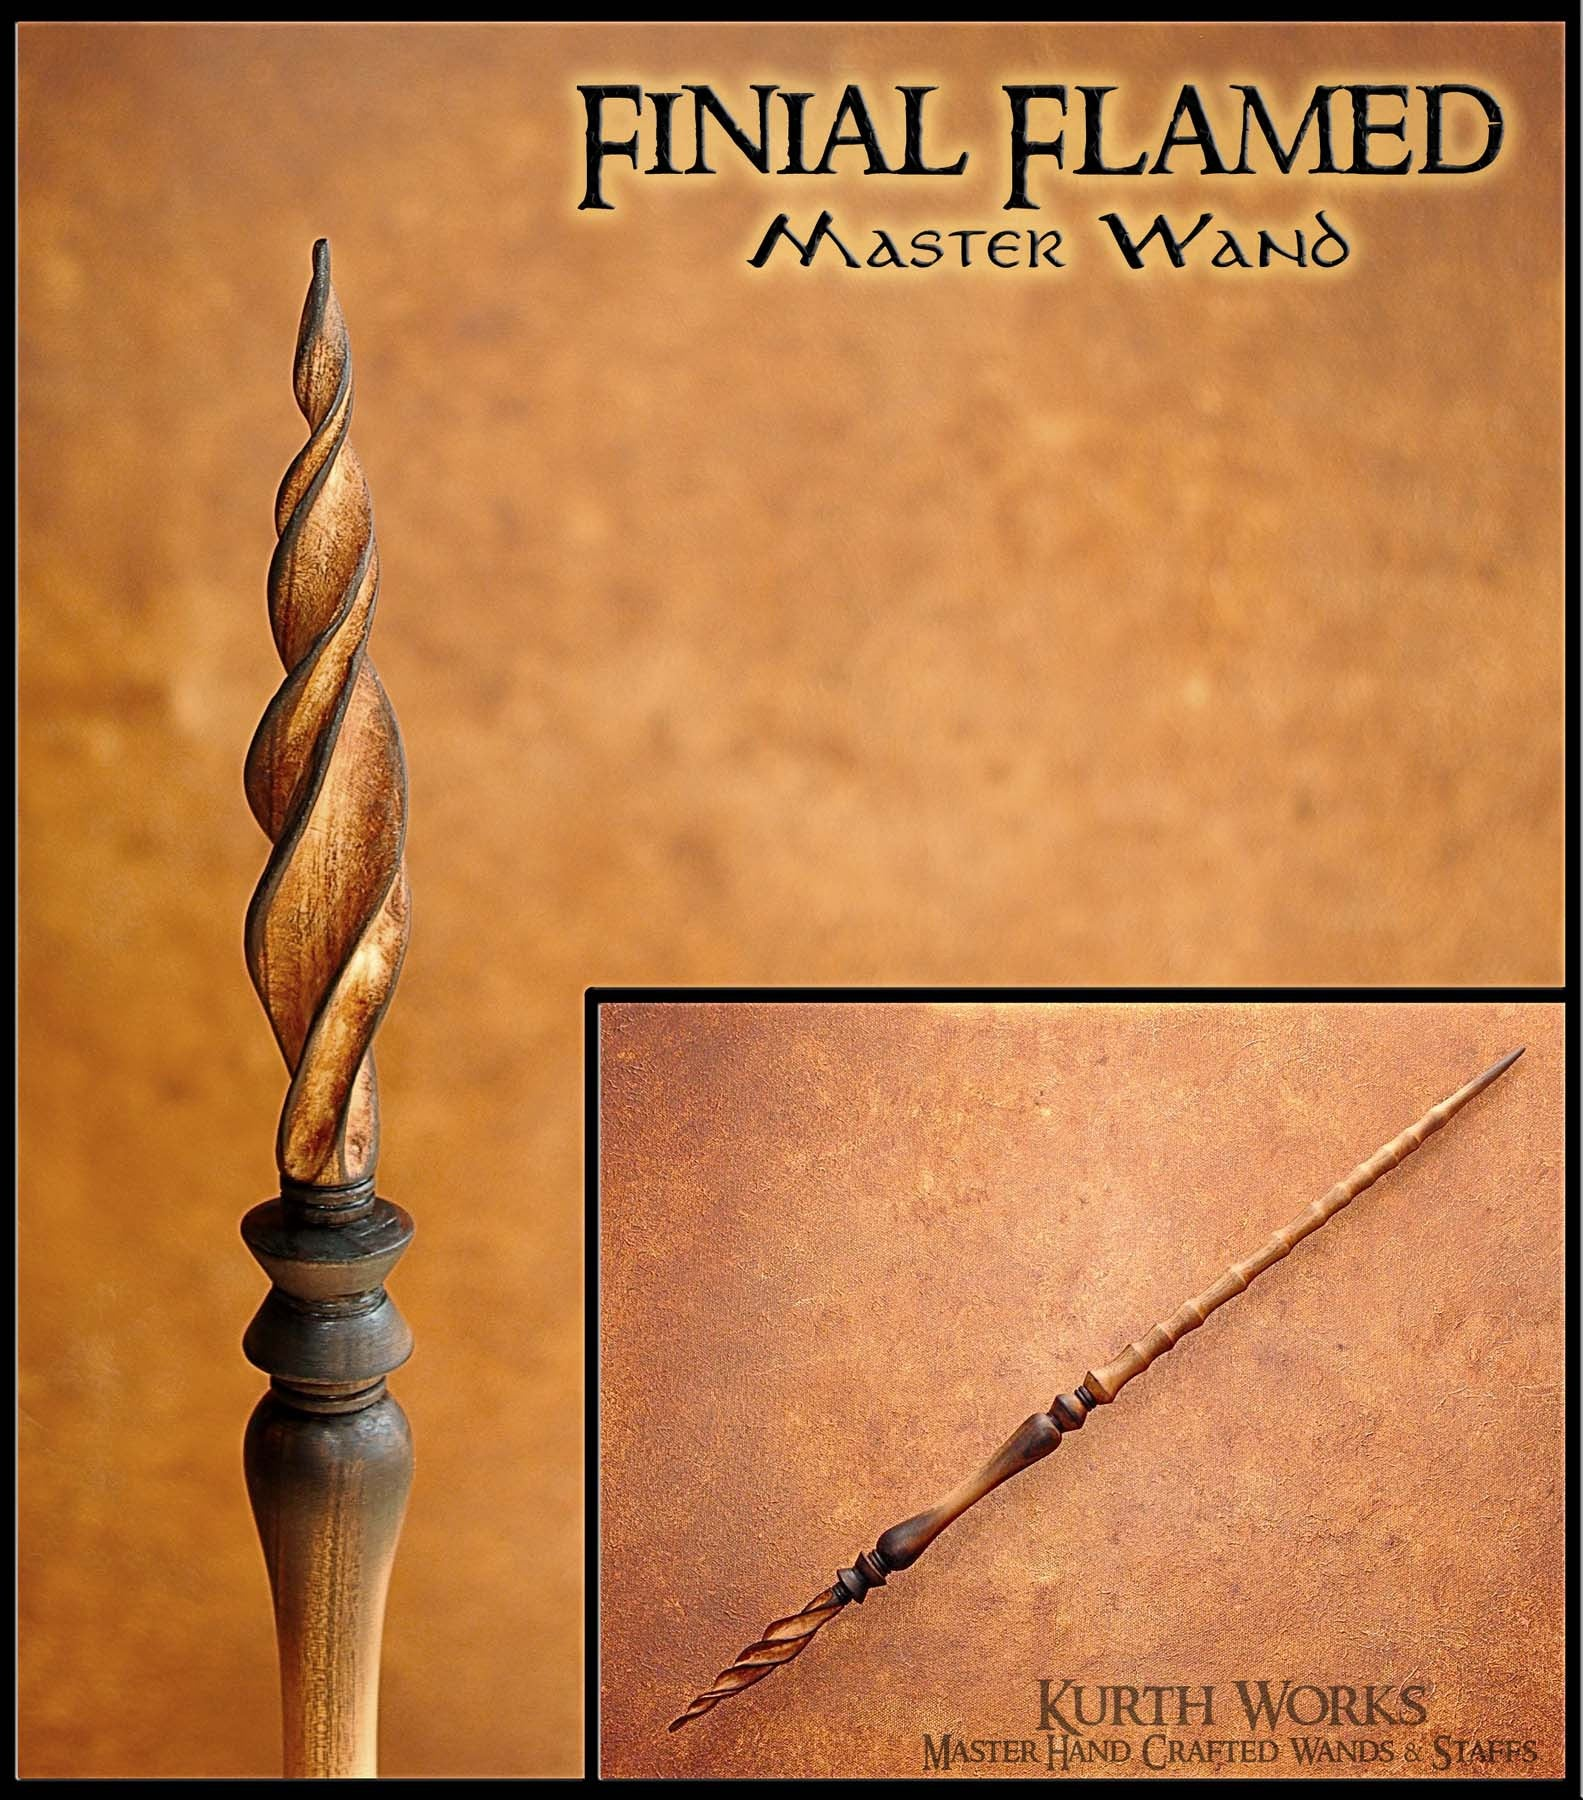 Finial Flamed Wizard Magic Wand